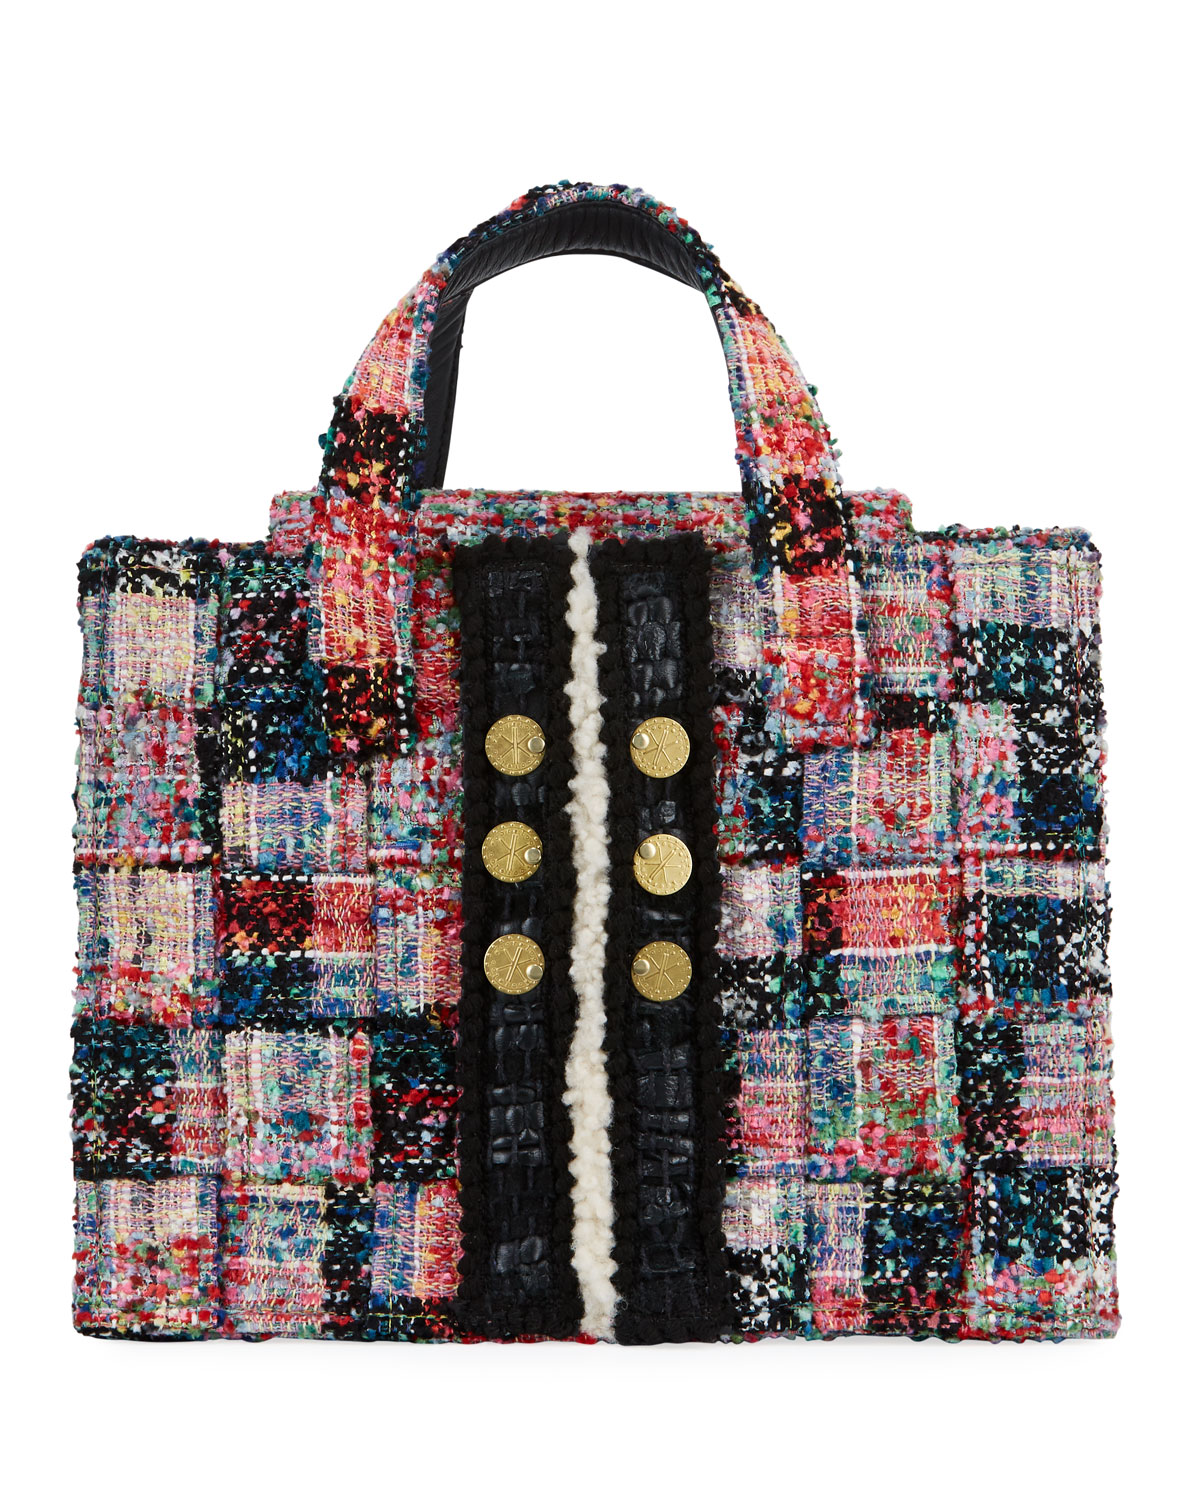 Kooreloo Diana Pixel Tweed Book Tote Bag In Red Pattern